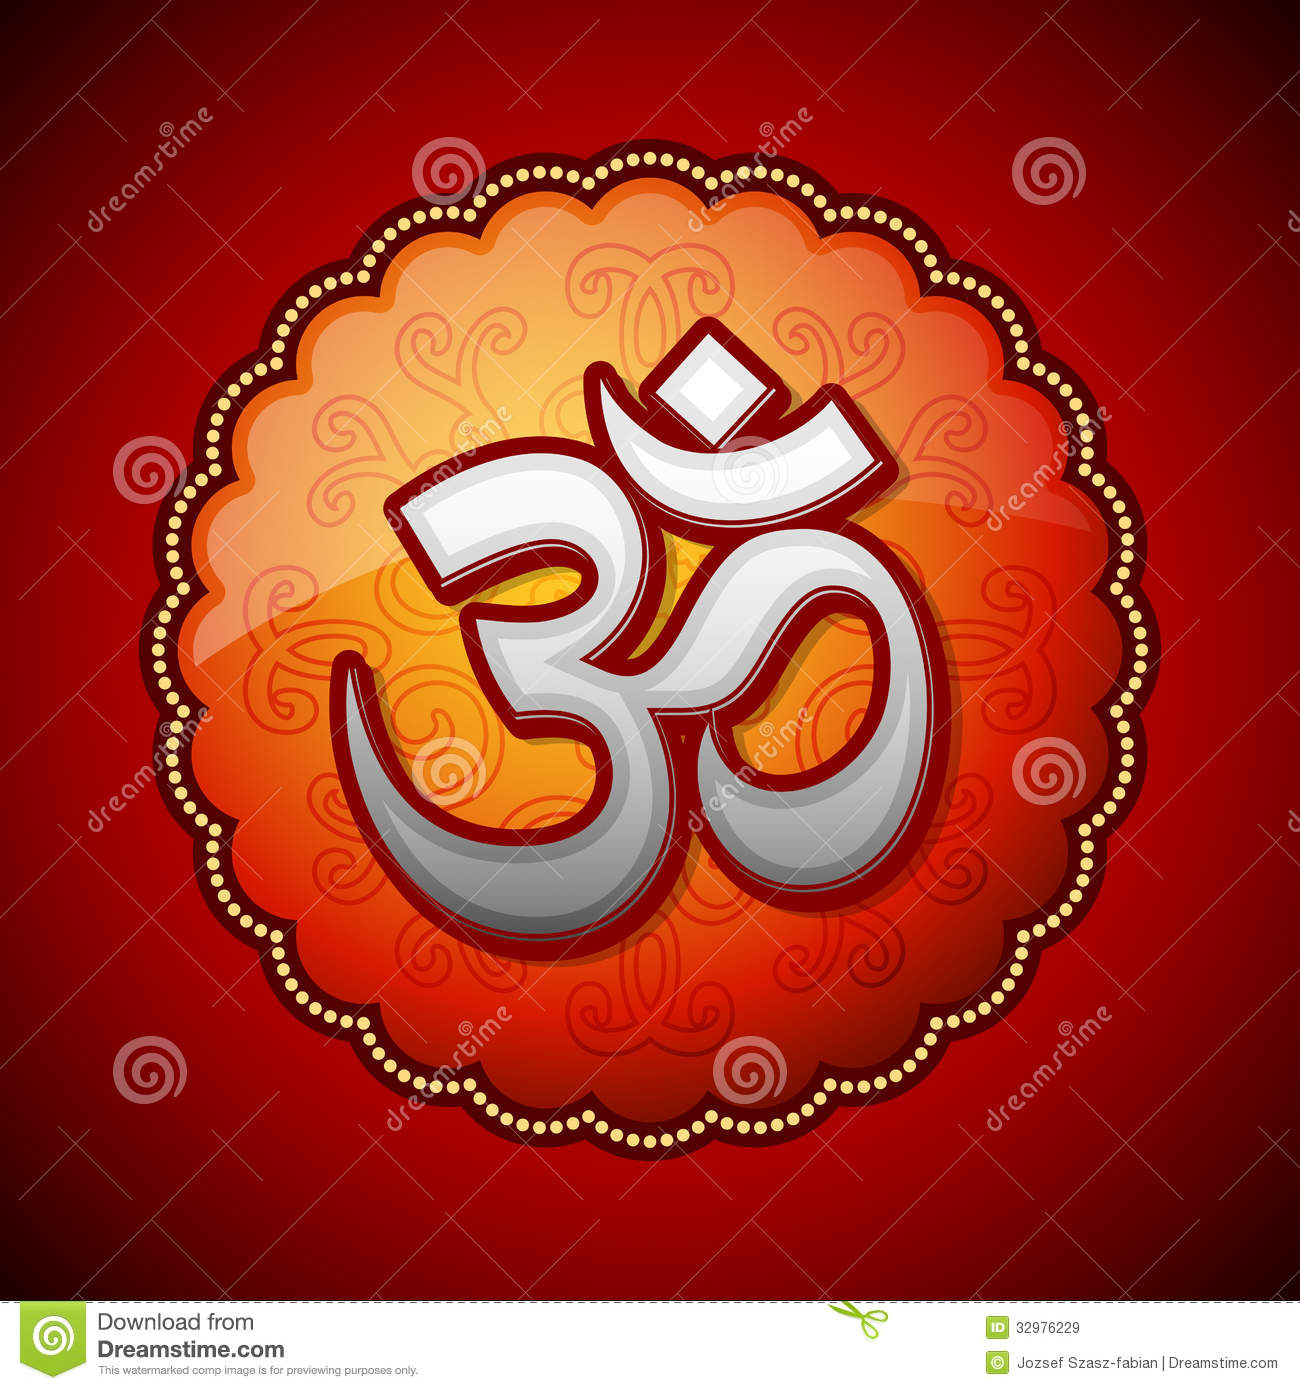 Buddhist om symbol meaning image collections symbol and sign ideas symbol meaning in buddhism om symbol meaning in buddhism buycottarizona biocorpaavc